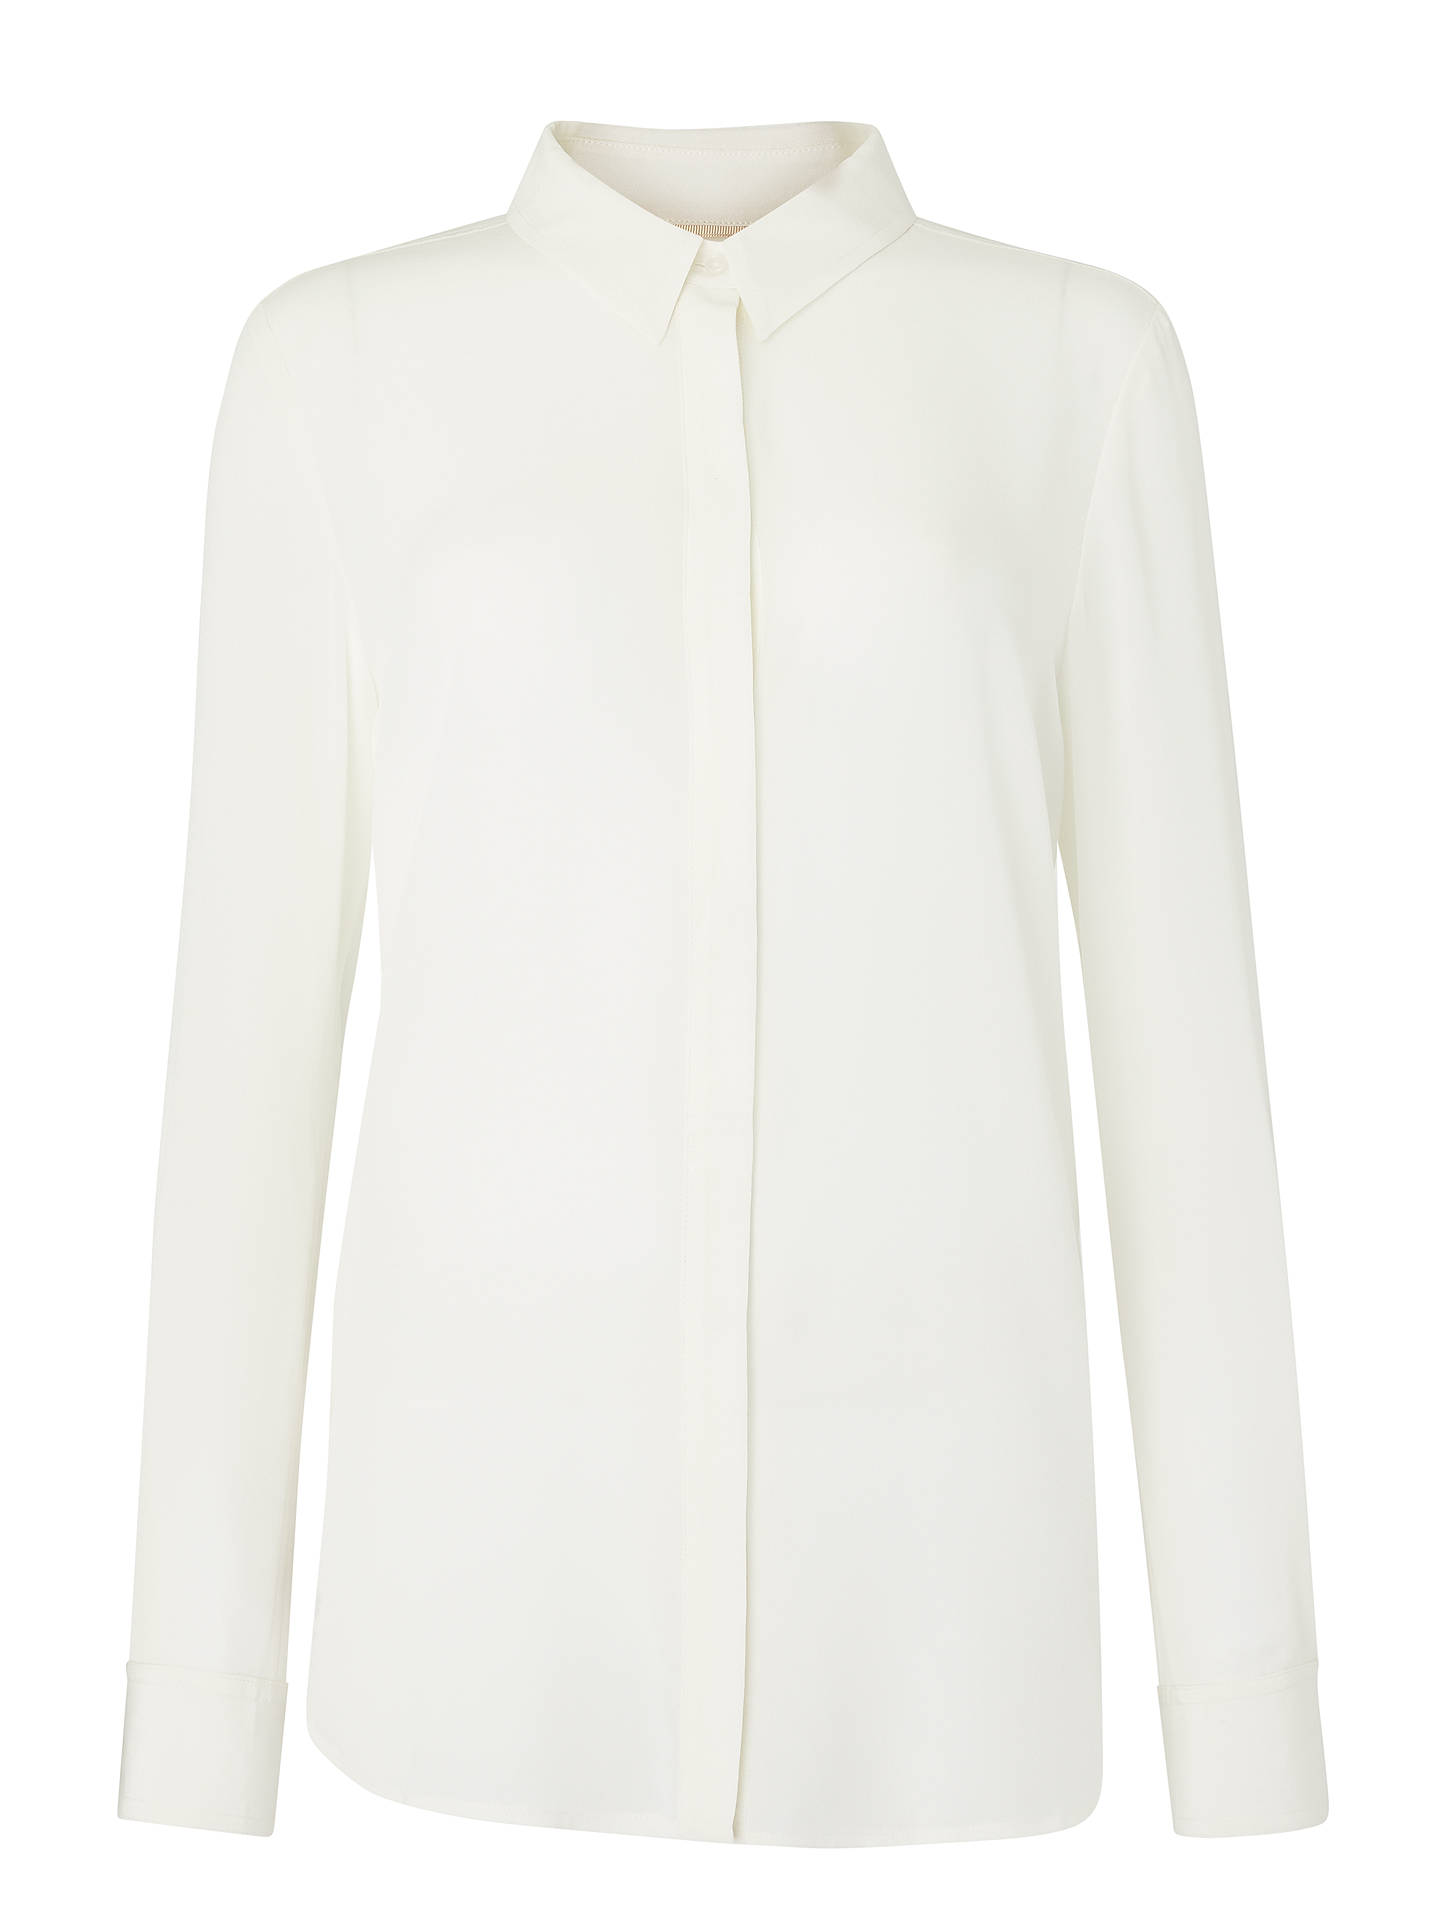 BuyBoden The Silk Shirt, Ivory, 8 Online at johnlewis.com